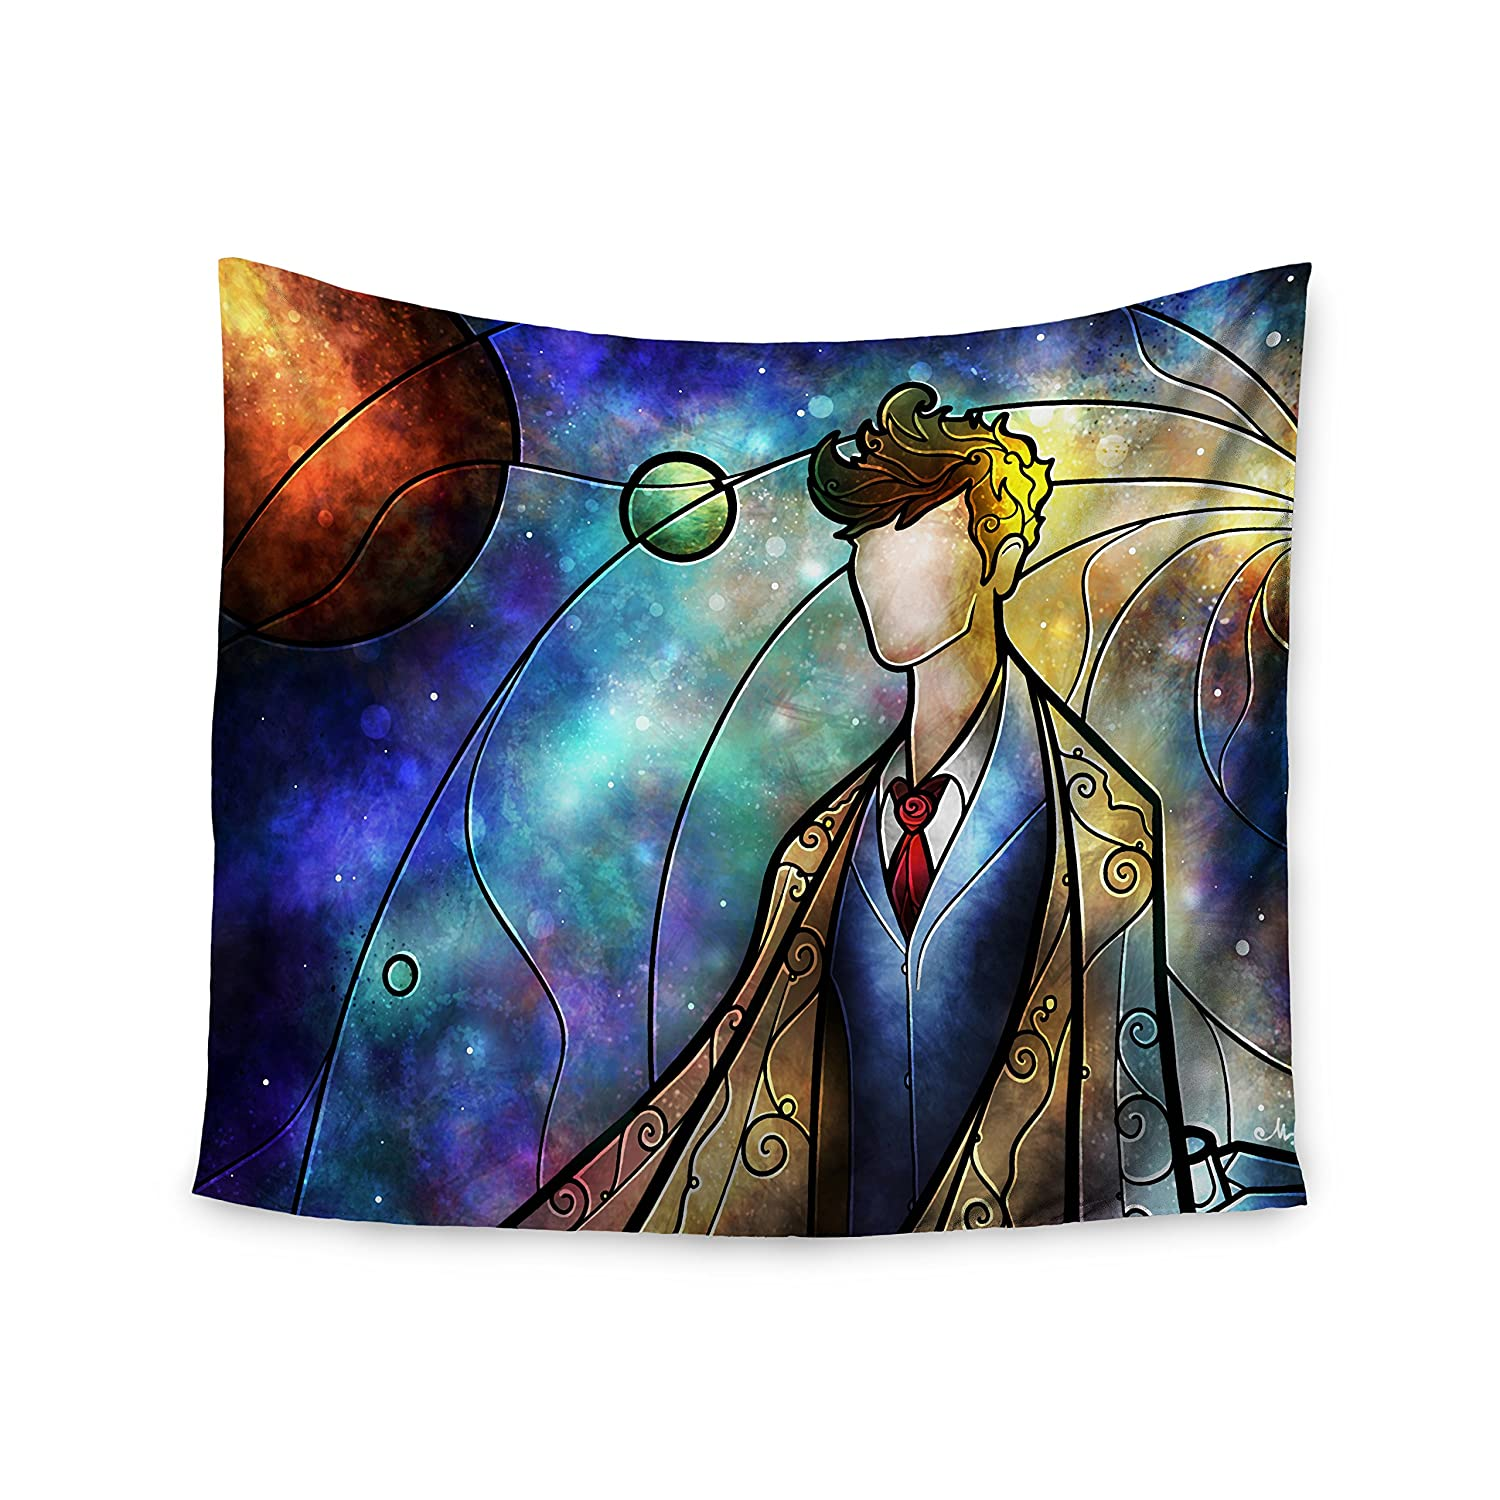 Kess Inhouse Mandie Manzano The 10th Space Blue Wall Tapestry 51 X 60 Home Kitchen Home Décor